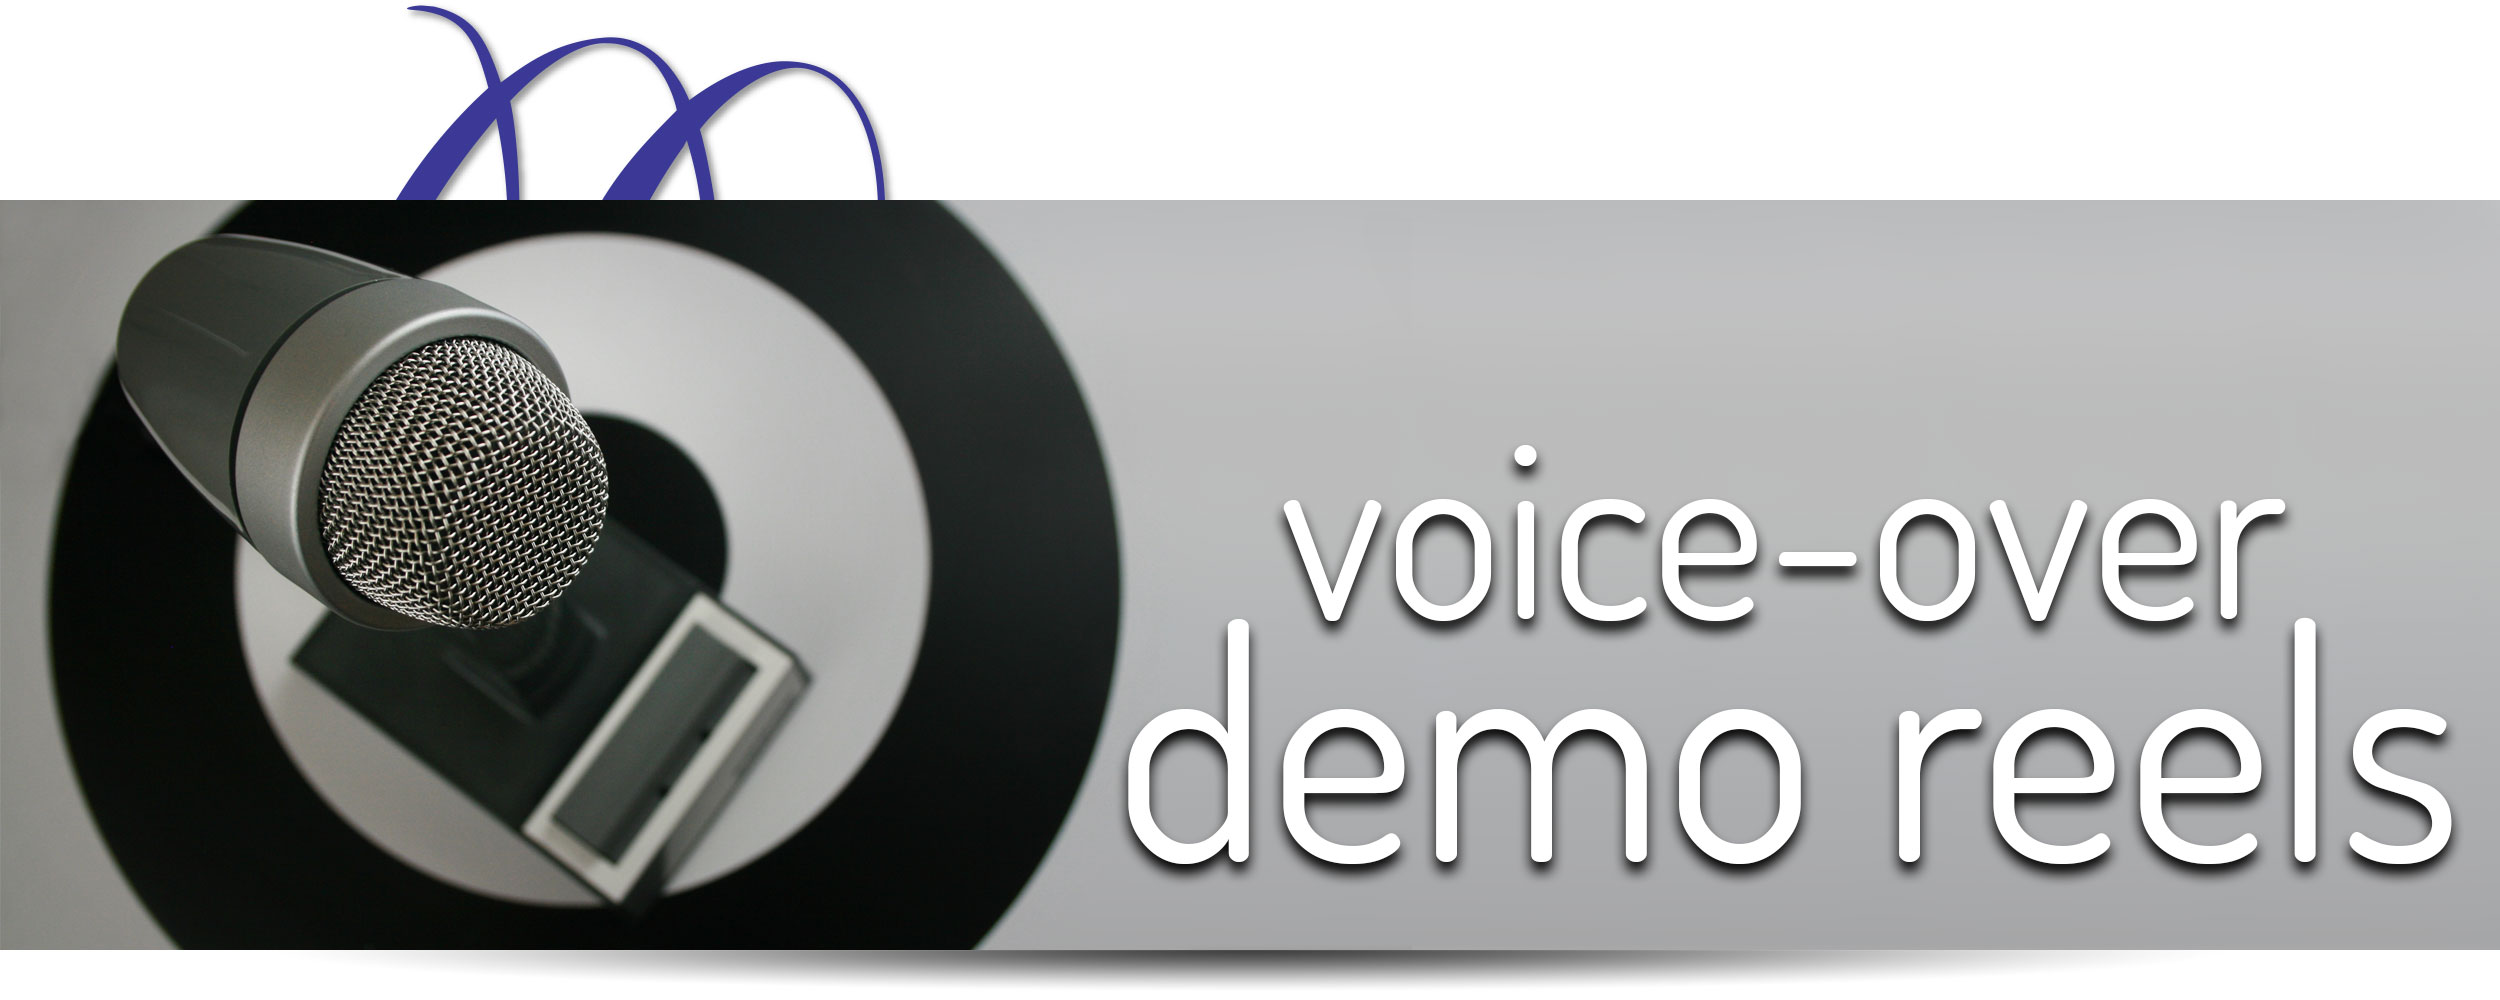 Voice-Over Demo Reels